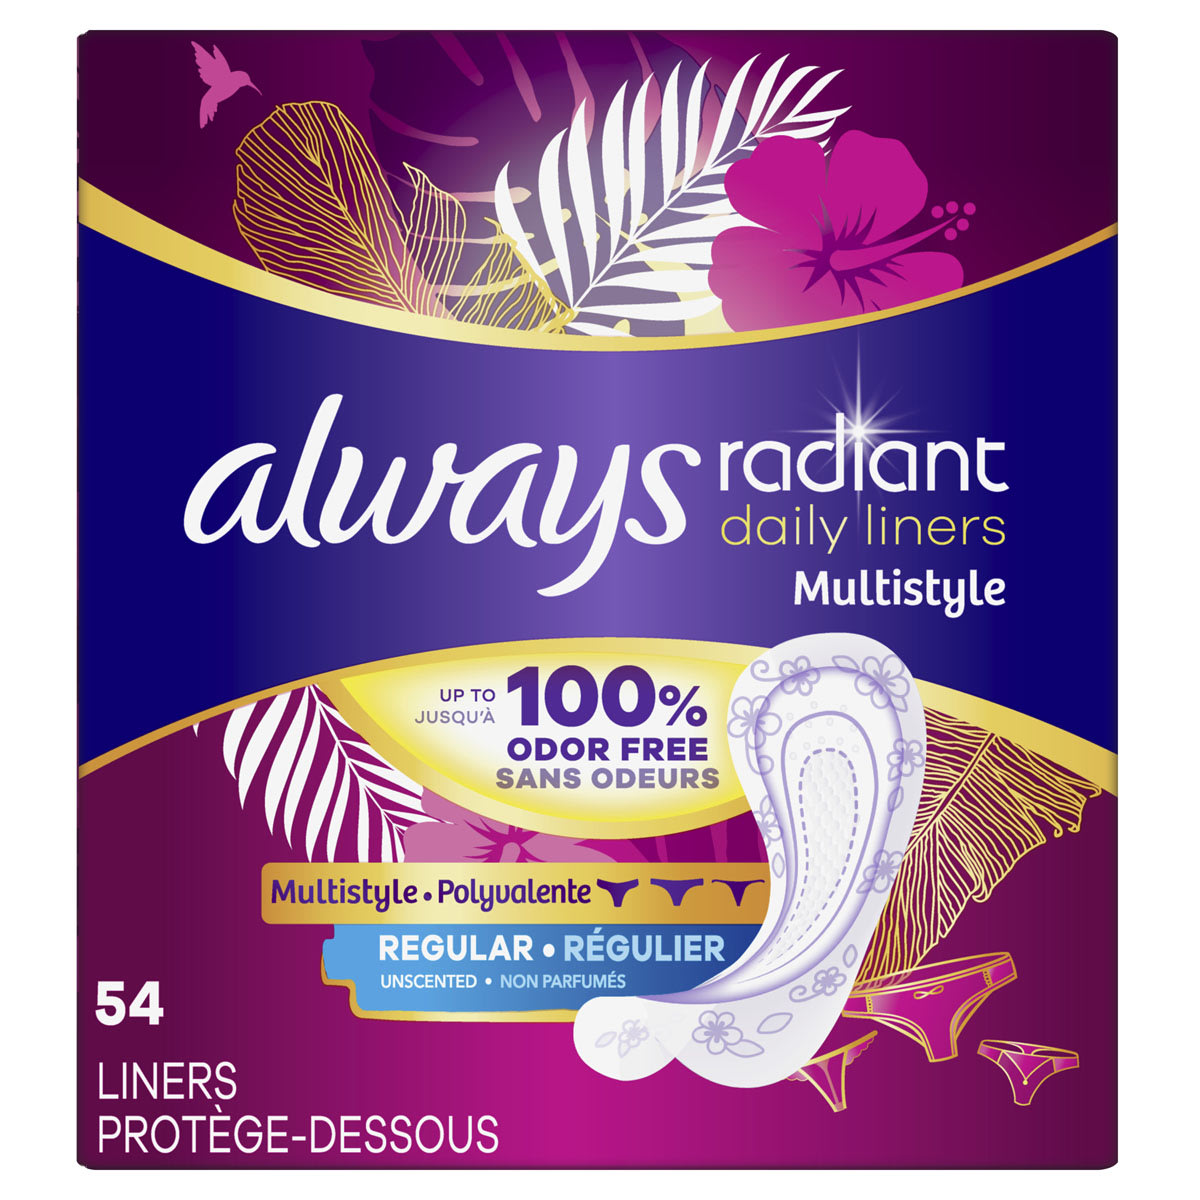 Always Radiant Daily Multistyle Liners Regular, Unscented